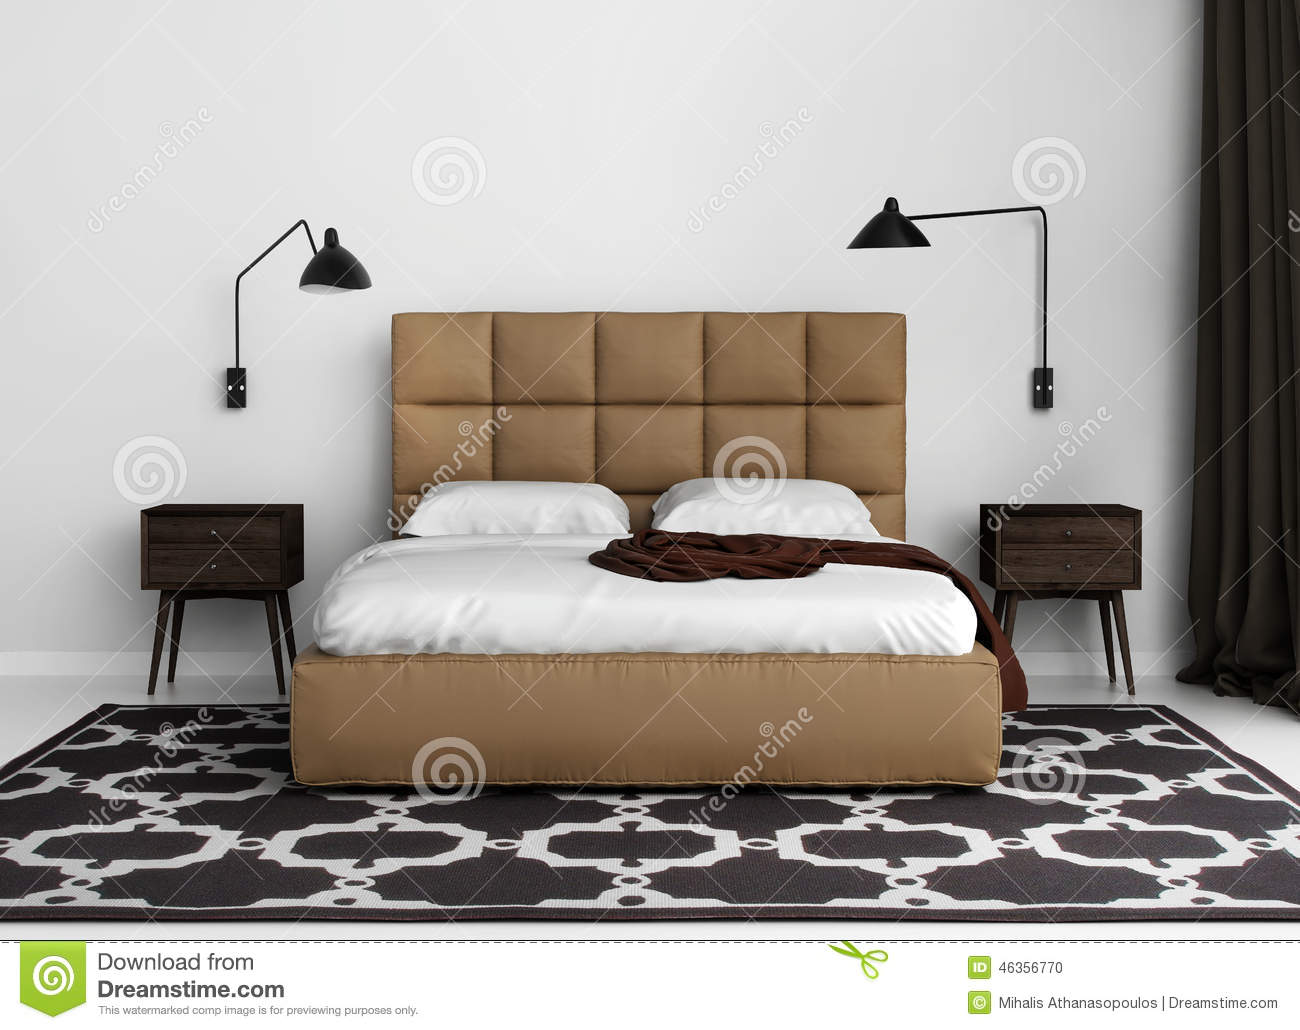 chambre coucher de luxe l gante contemporaine avec le lit en cuir illustration stock. Black Bedroom Furniture Sets. Home Design Ideas